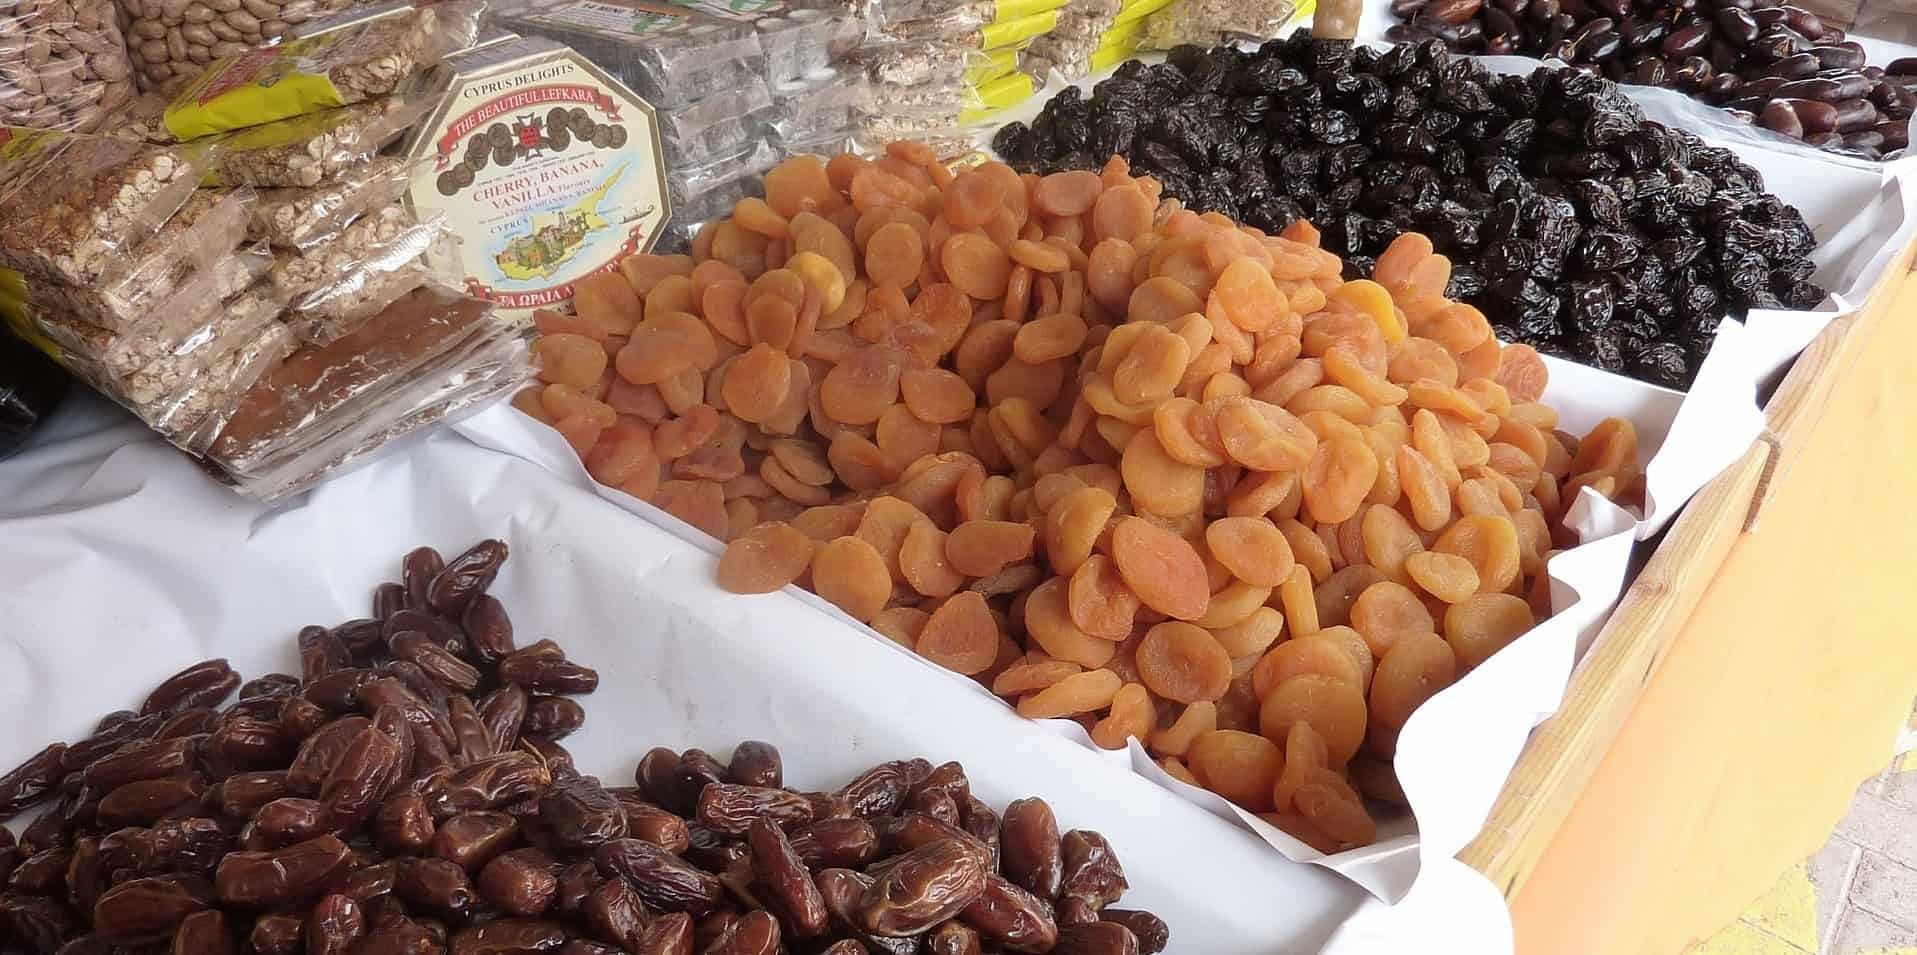 Dried fruit at a market stand.